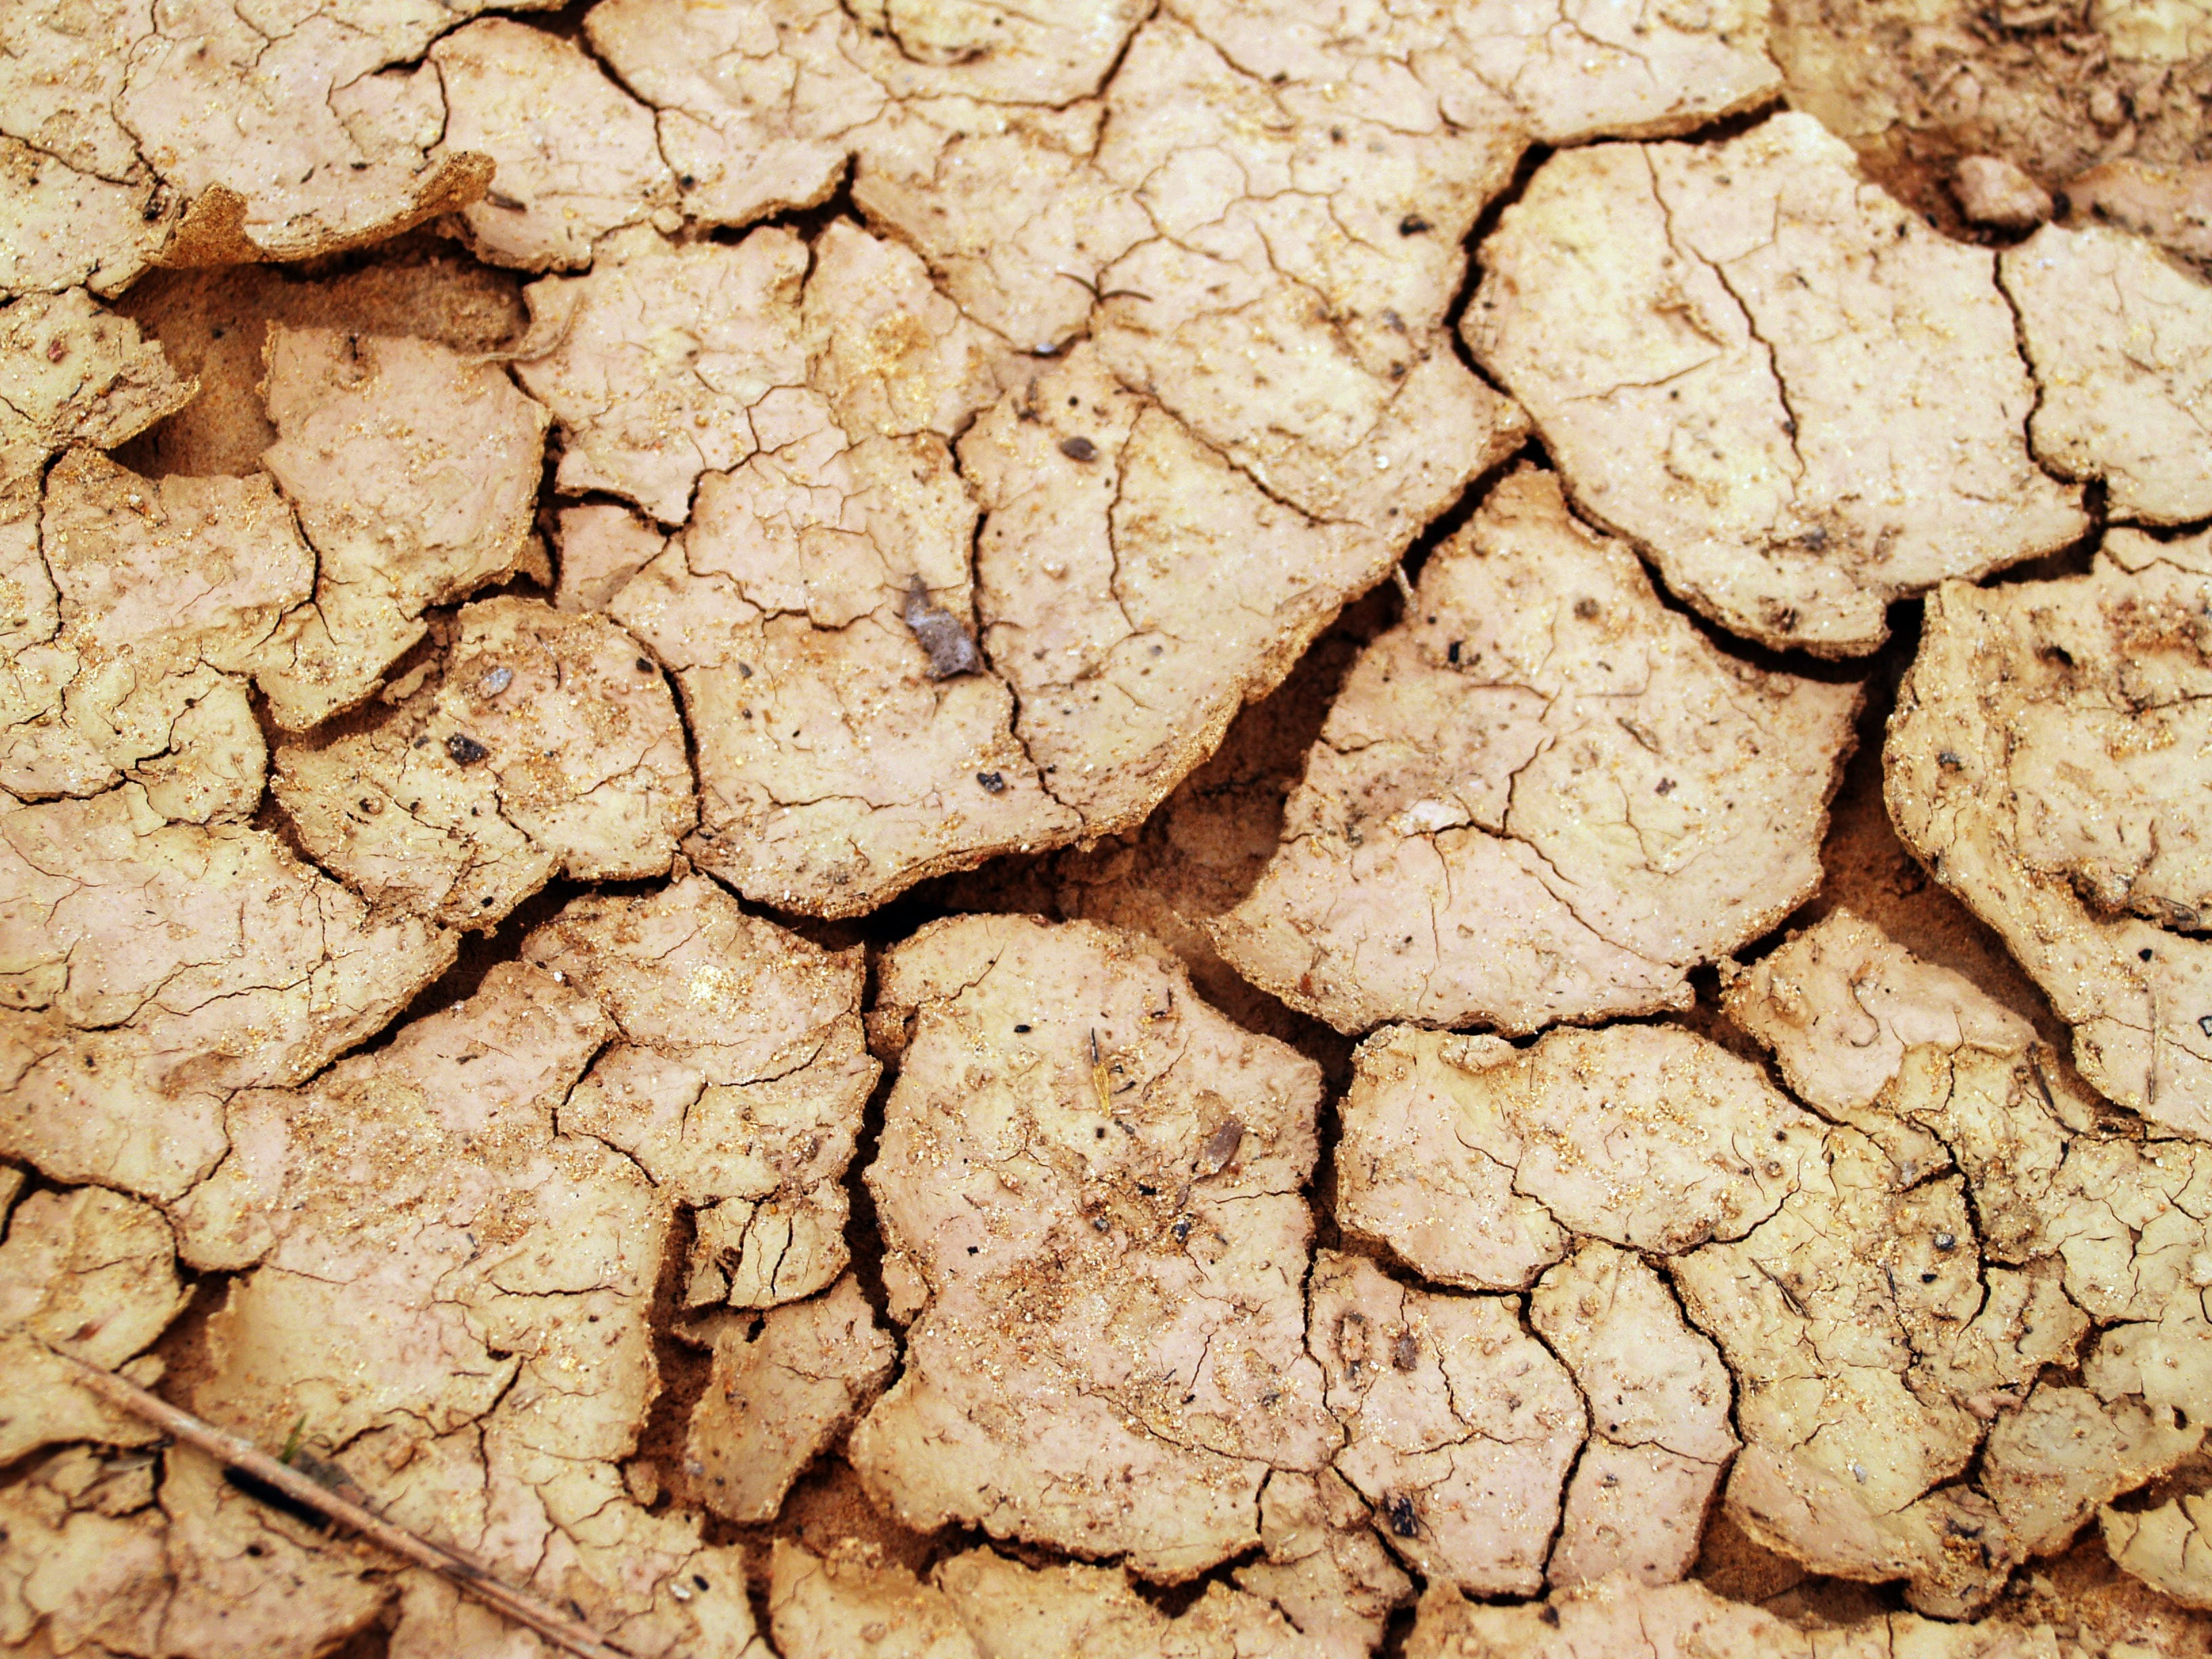 Dried Soil